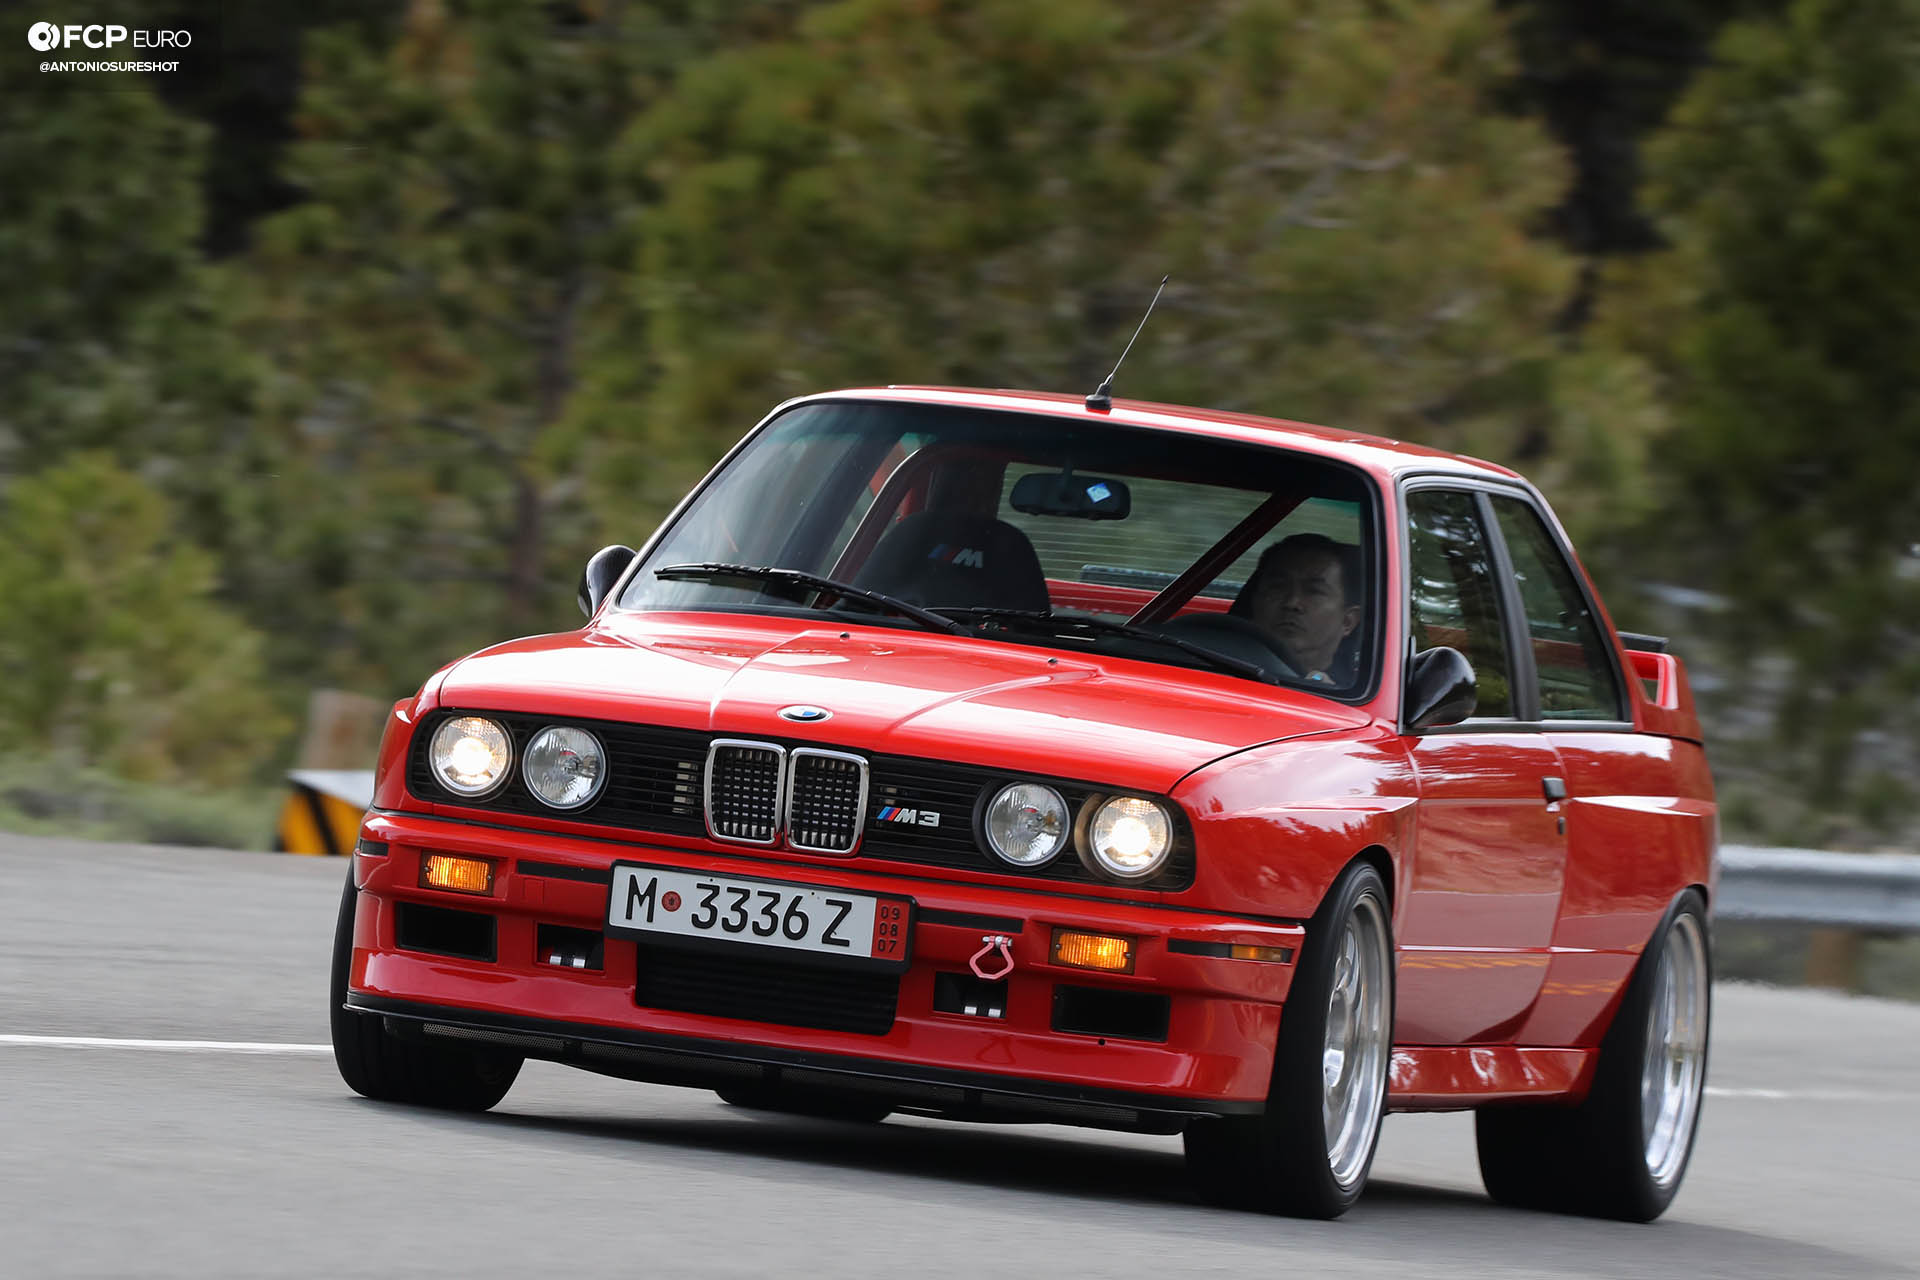 E30 M3 Evo Supercharged metal widebody Sierra Mountains Bilstein Eibach Ground Control AKG Ireland Engineering S50